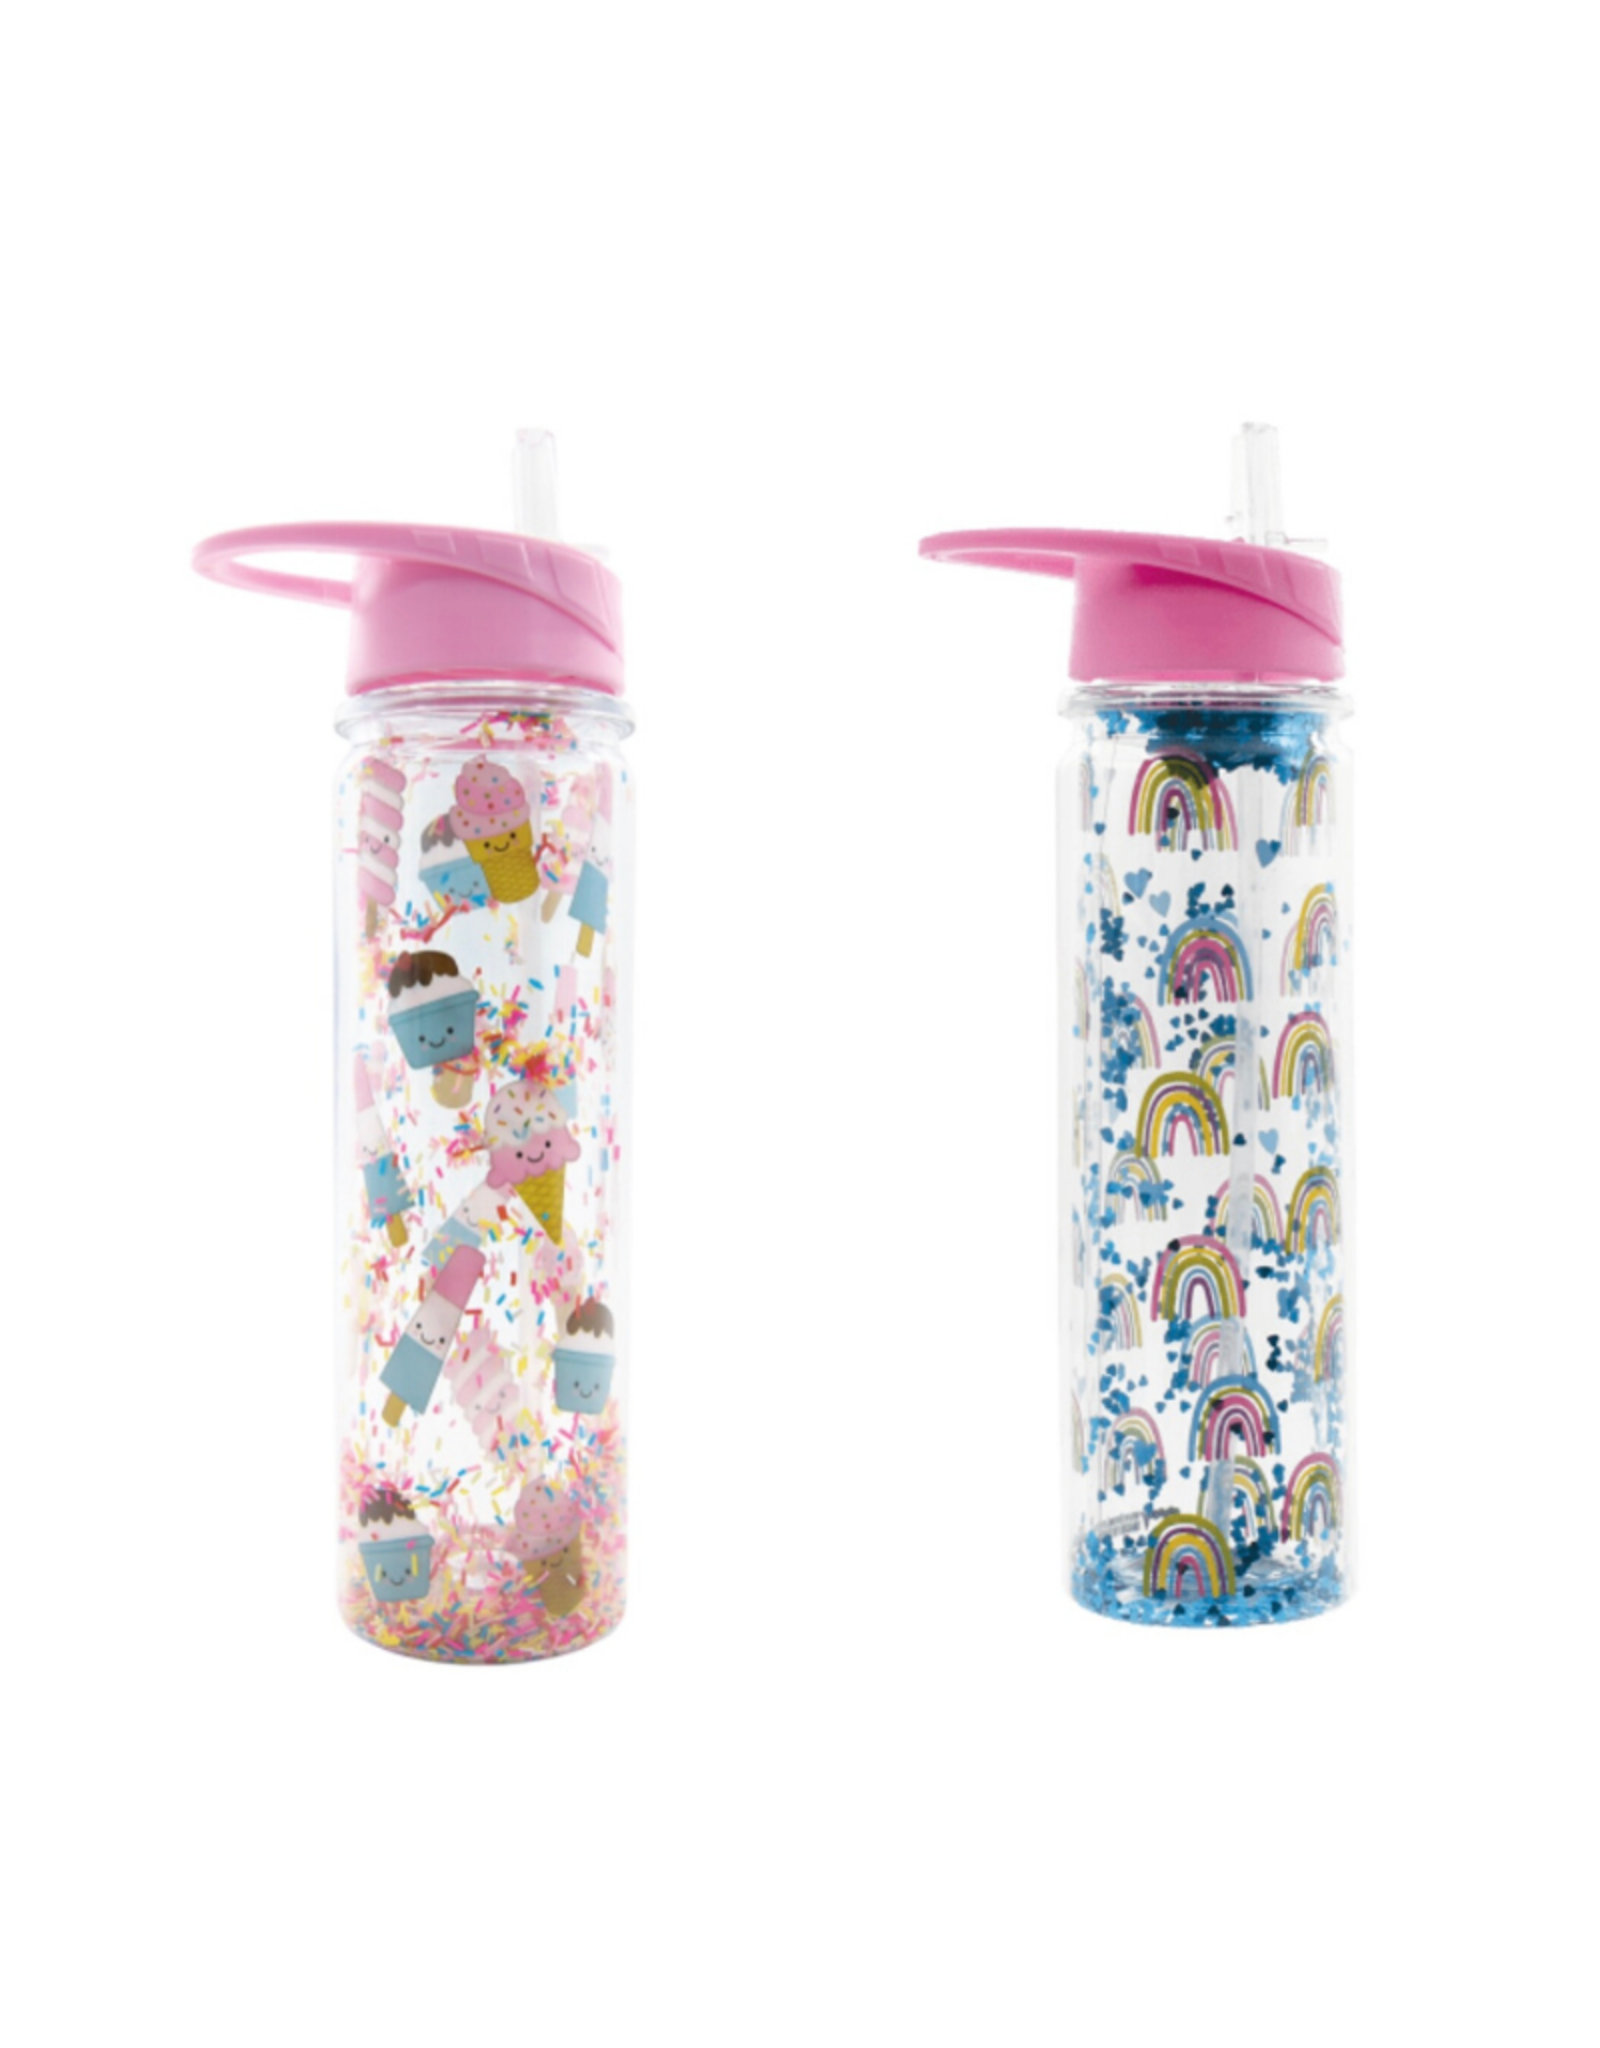 Iscream Confetti Filled Water Bottle with Flip up Straw